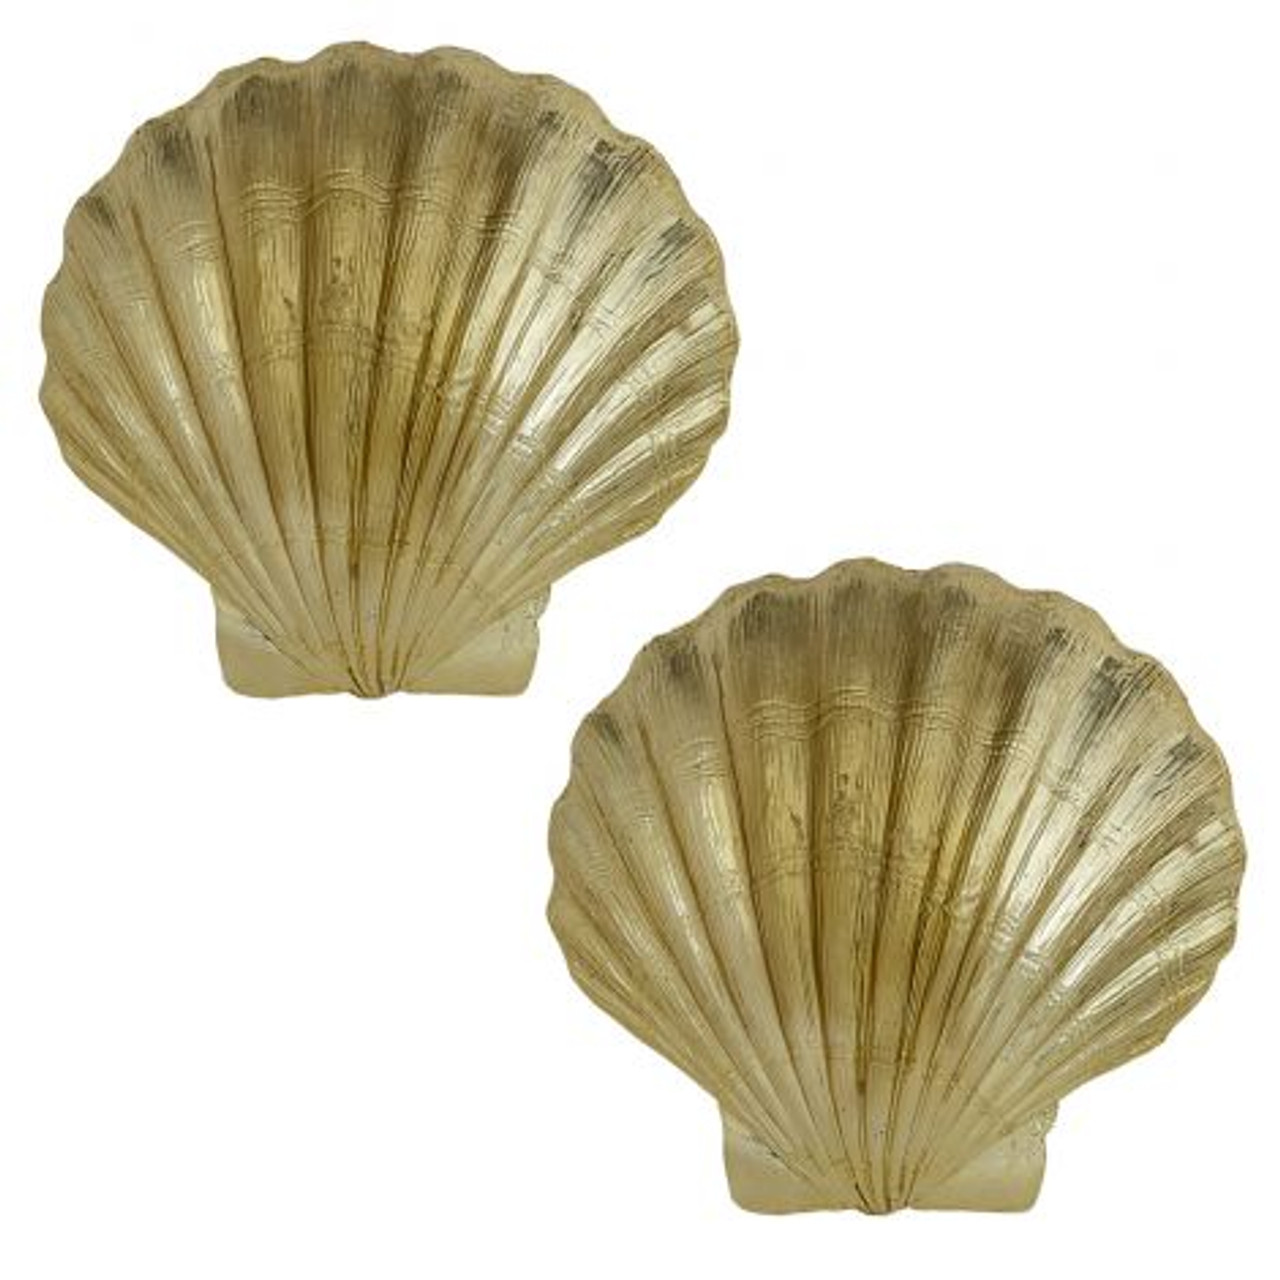 Scallop Shell In Electro Gold 7 5 Set Of 2